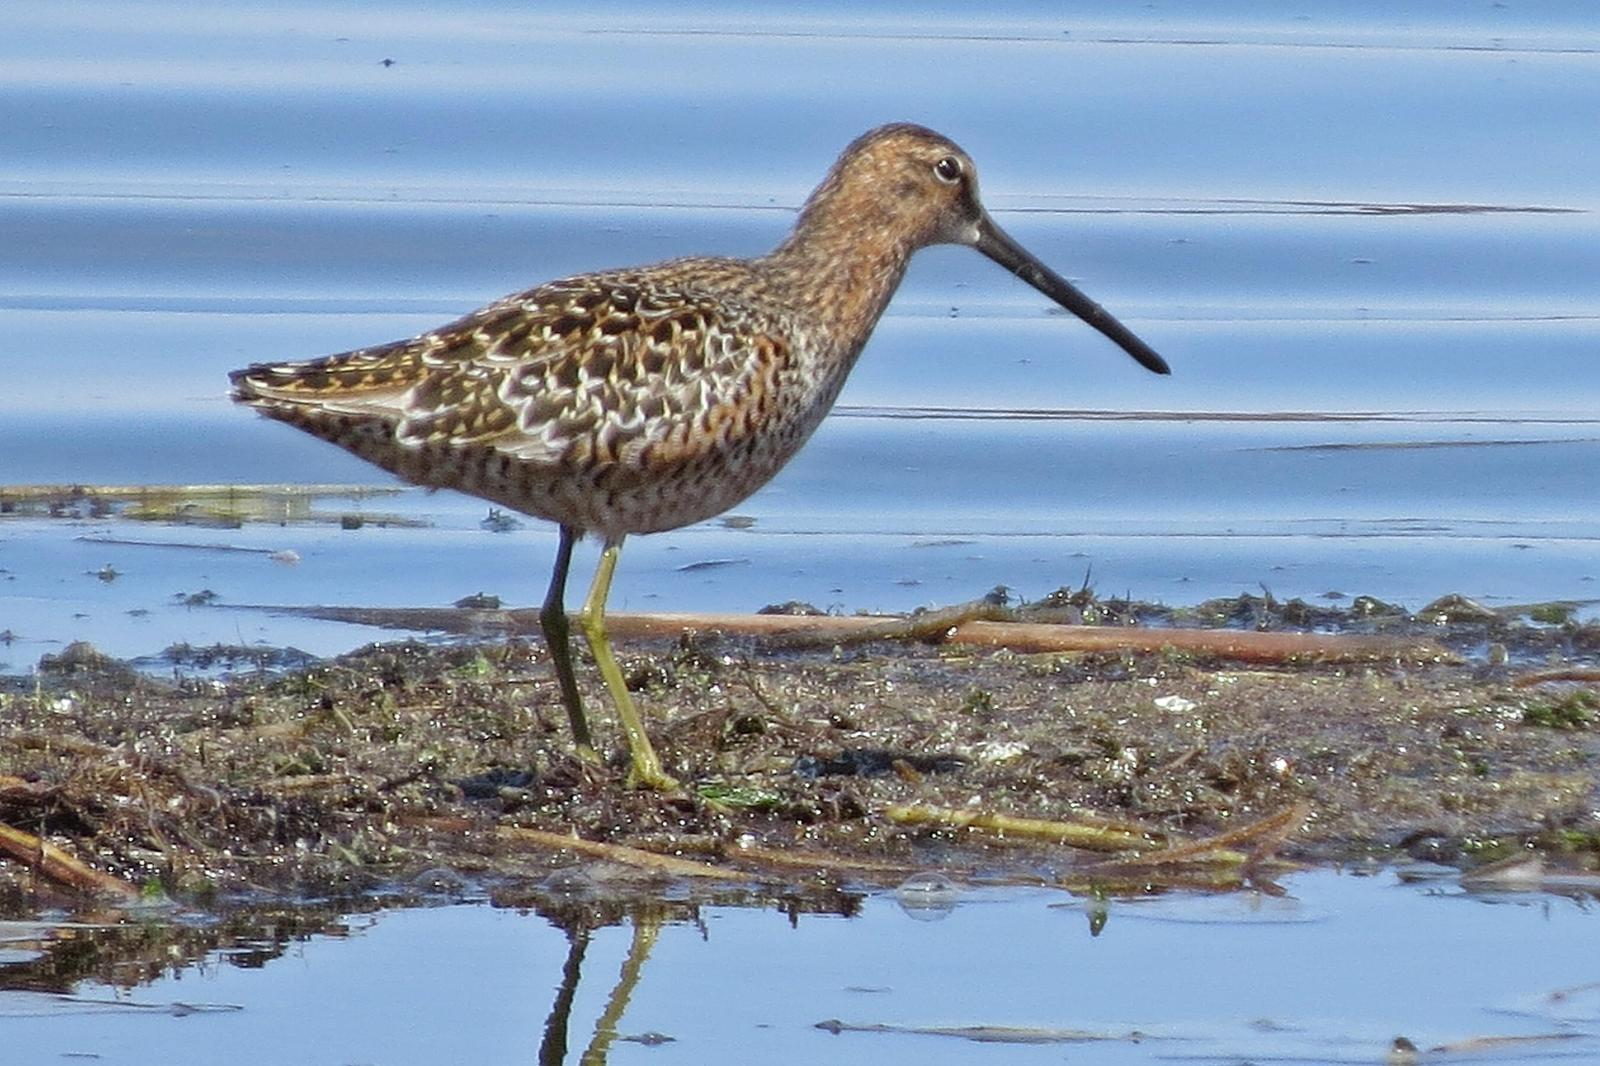 Long-billed Dowitcher Photo by Enid Bachman